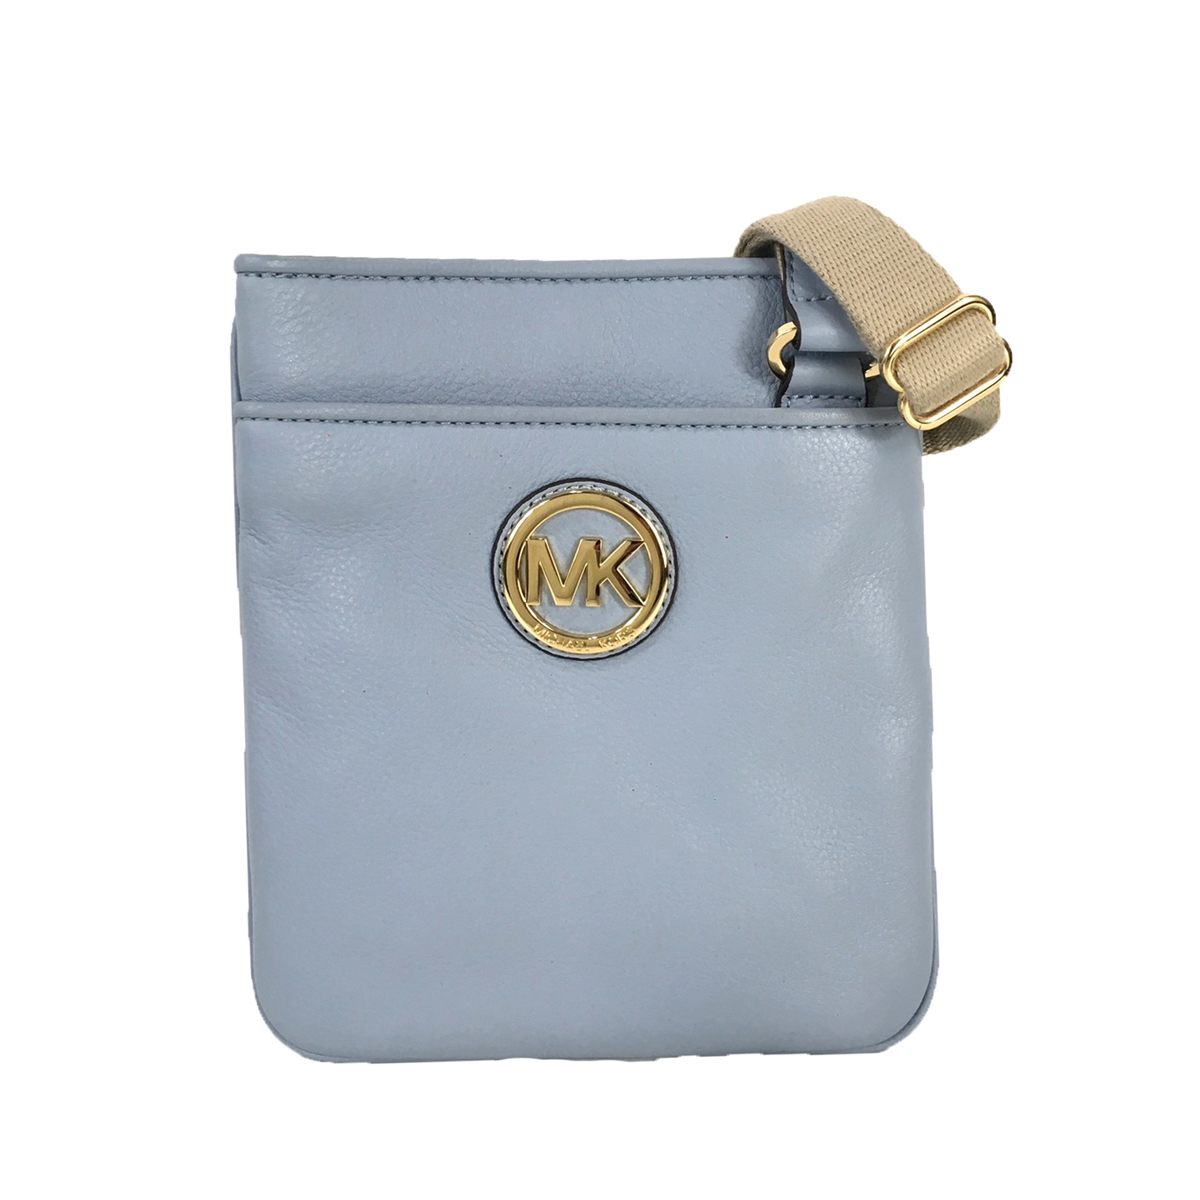 e2f0ec450335b1 Michael Kors Fulton Leather Swingpack Crossbody, Pale Blue